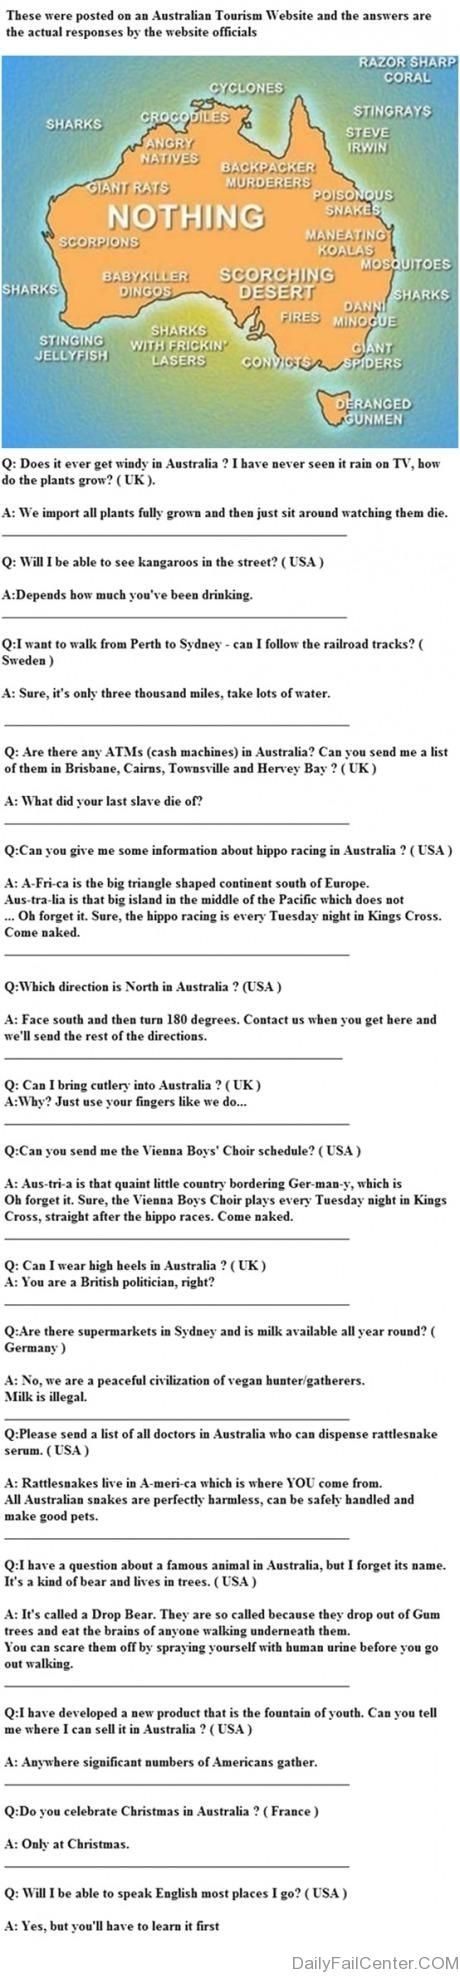 People in Australia are funny. Alleged answers to queries by potential tourists.